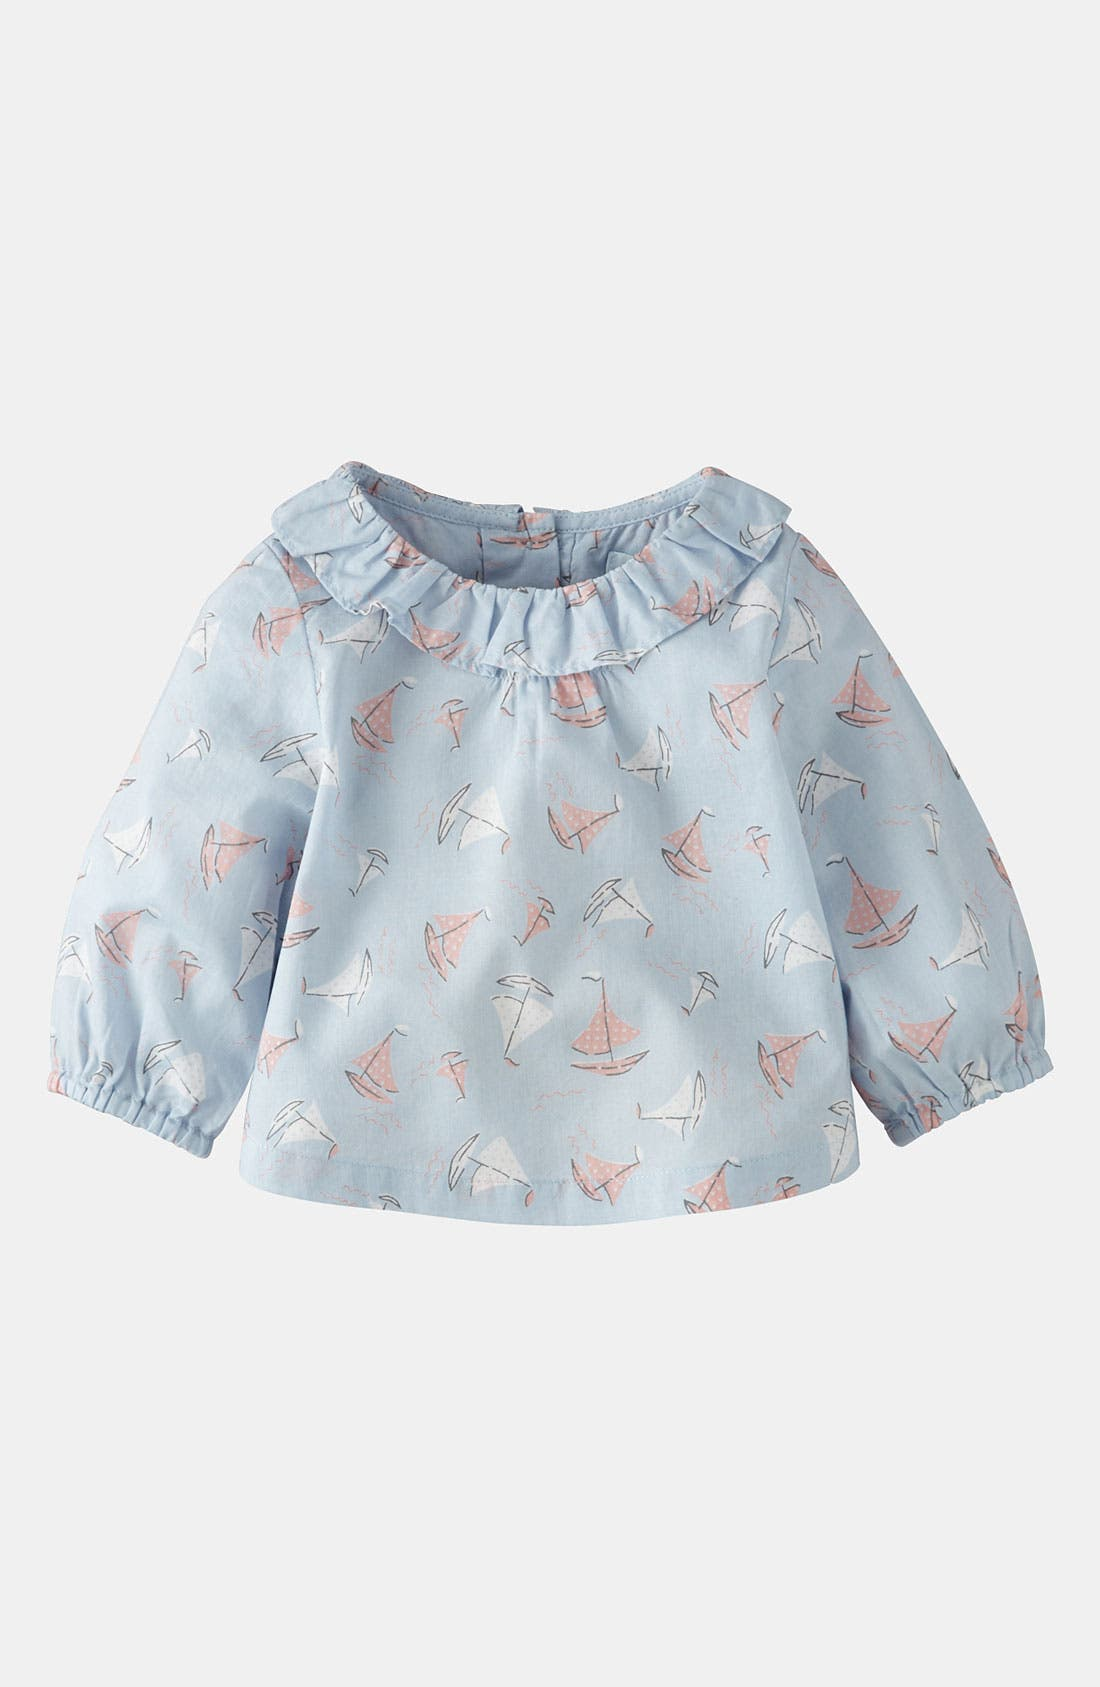 Alternate Image 1 Selected - Mini Boden 'Pretty' Woven Top (Baby)